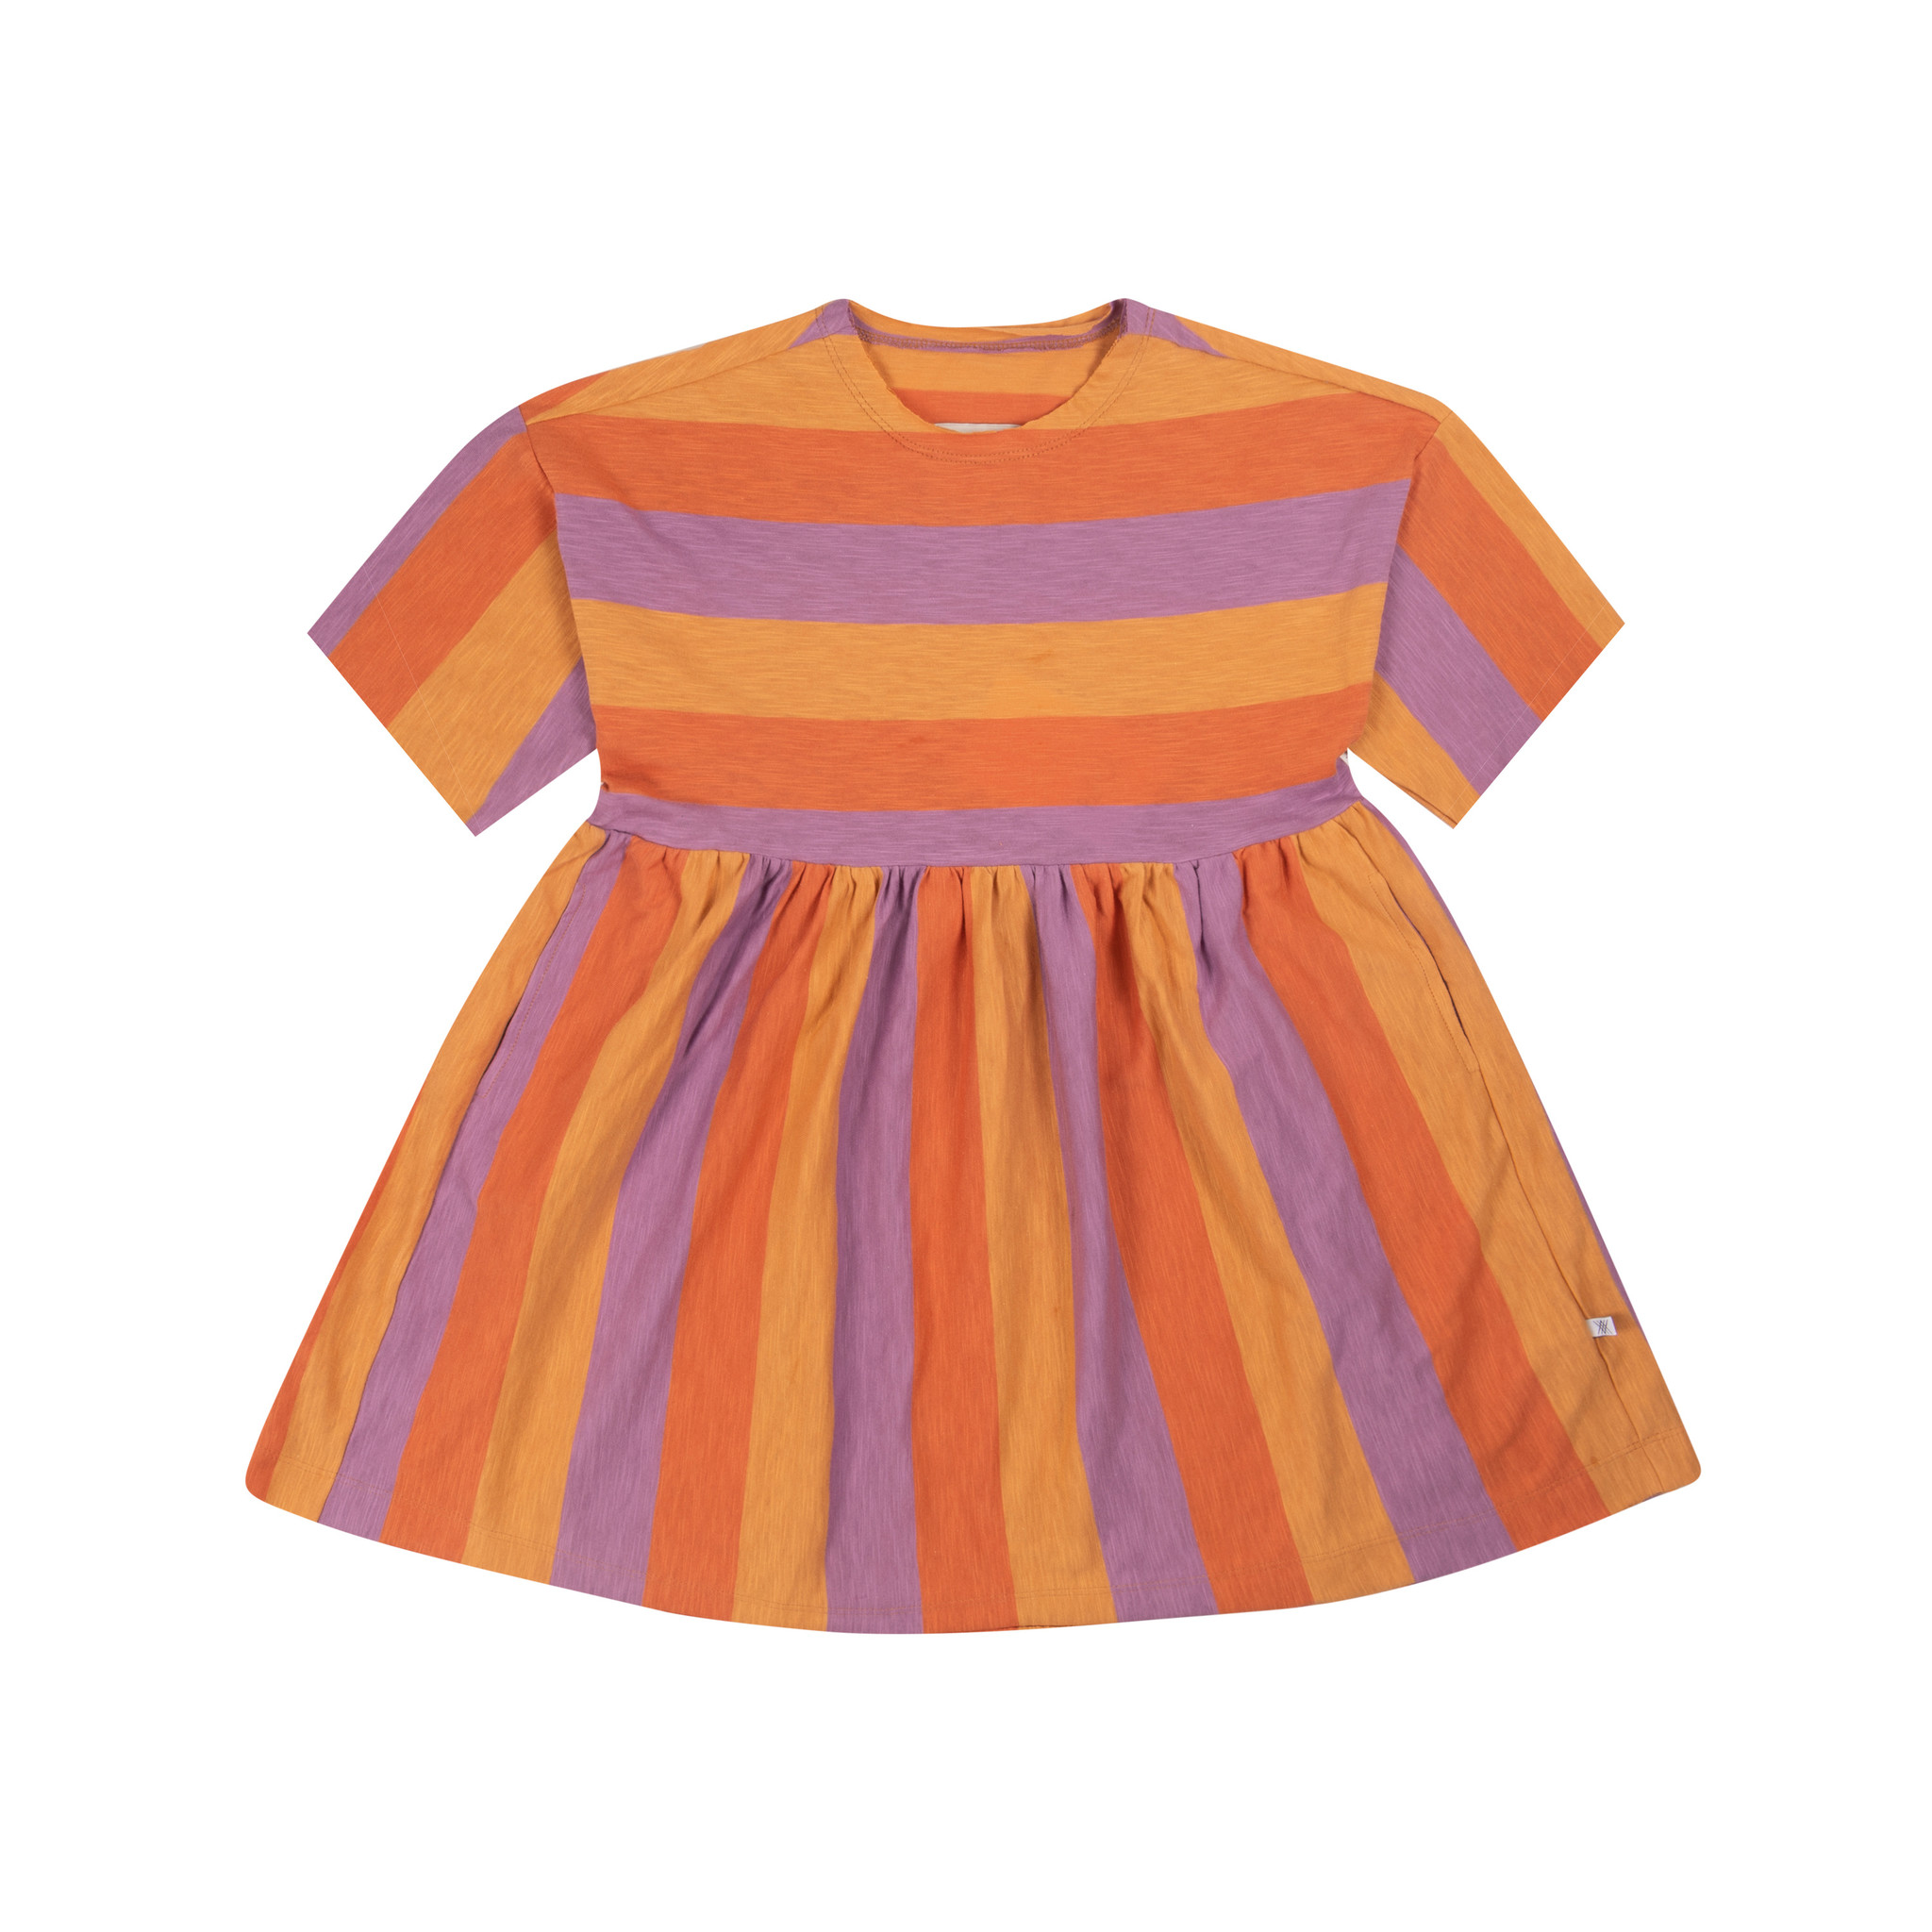 Simple dress - Peachy Lavender Block Stripe-1